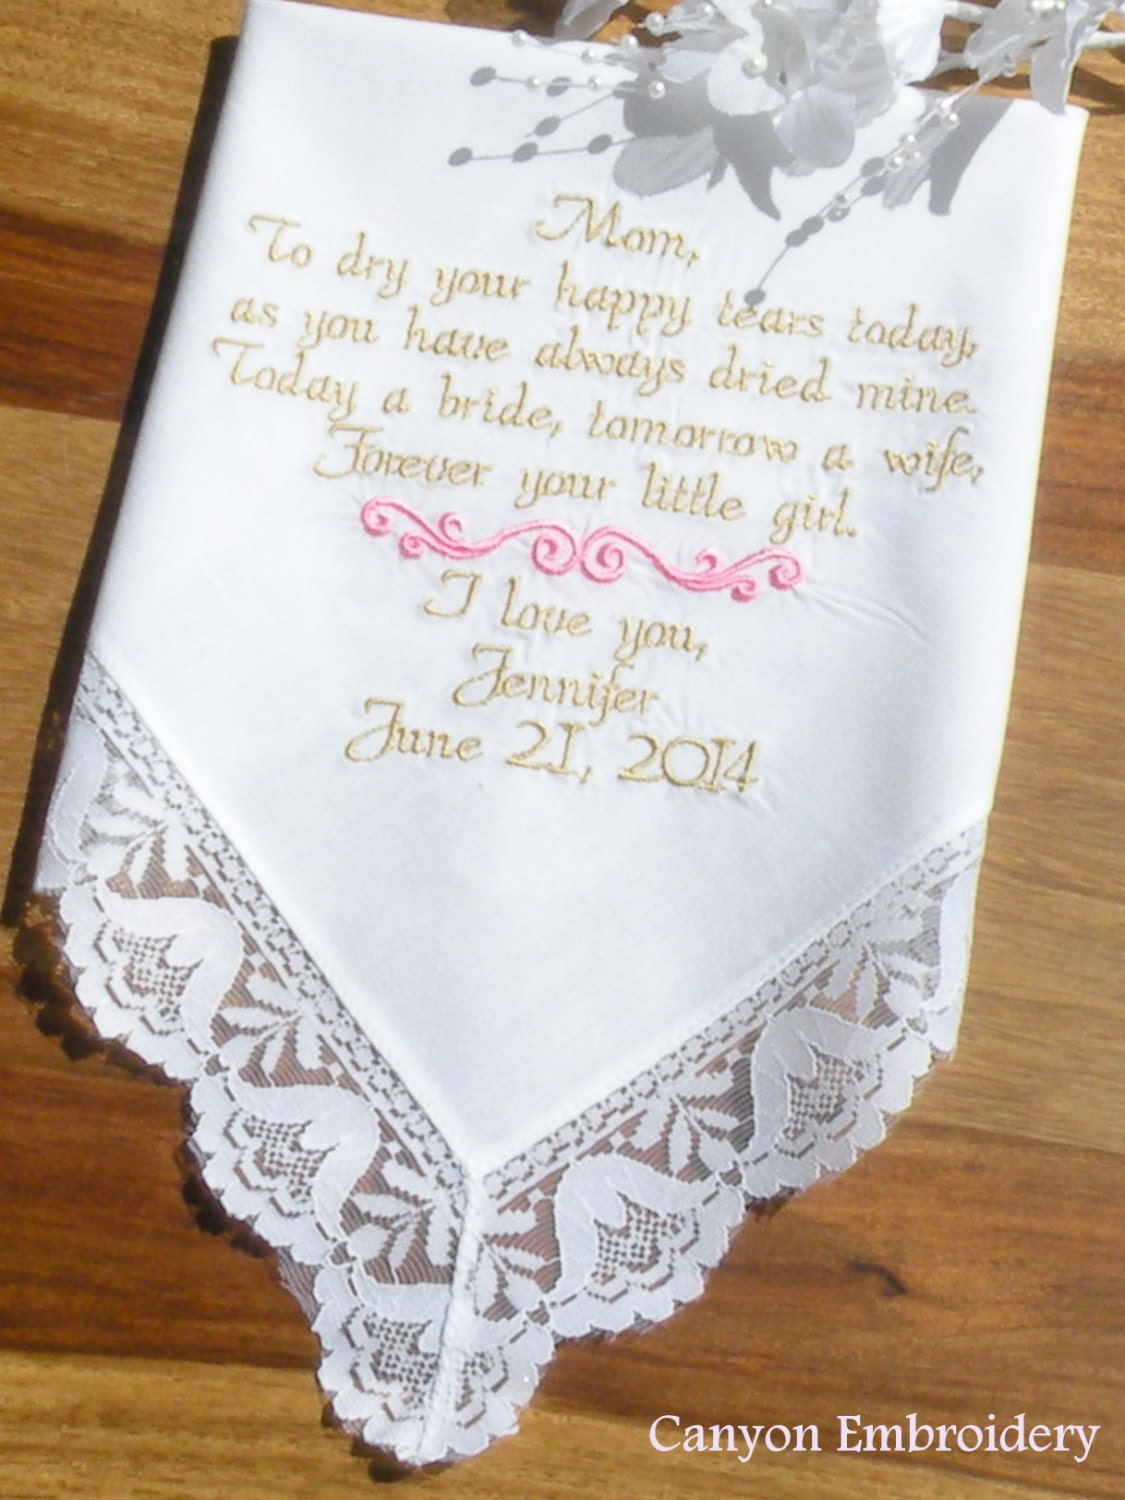 embroidered wedding handkerchief mother of the bride to dry